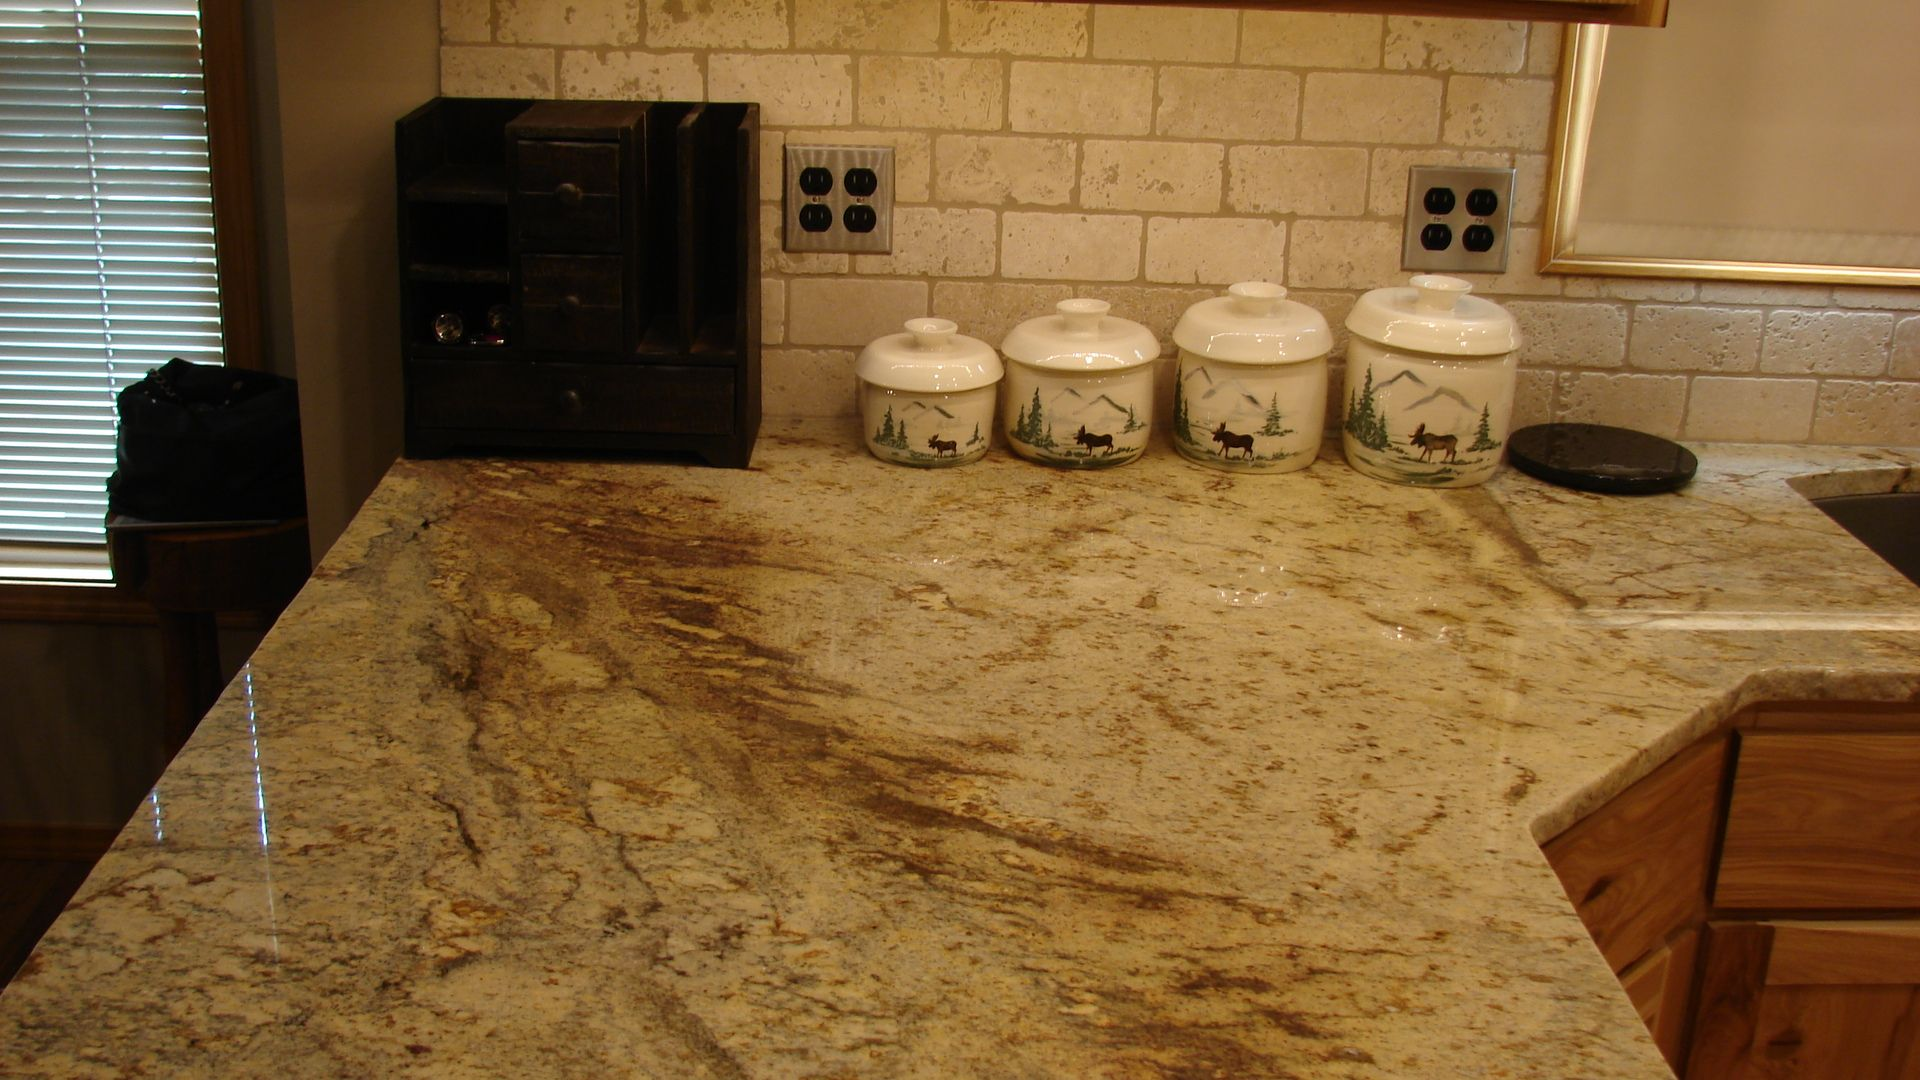 3cm typhoon bordeaux granite counter with tumbled travertine backsplash